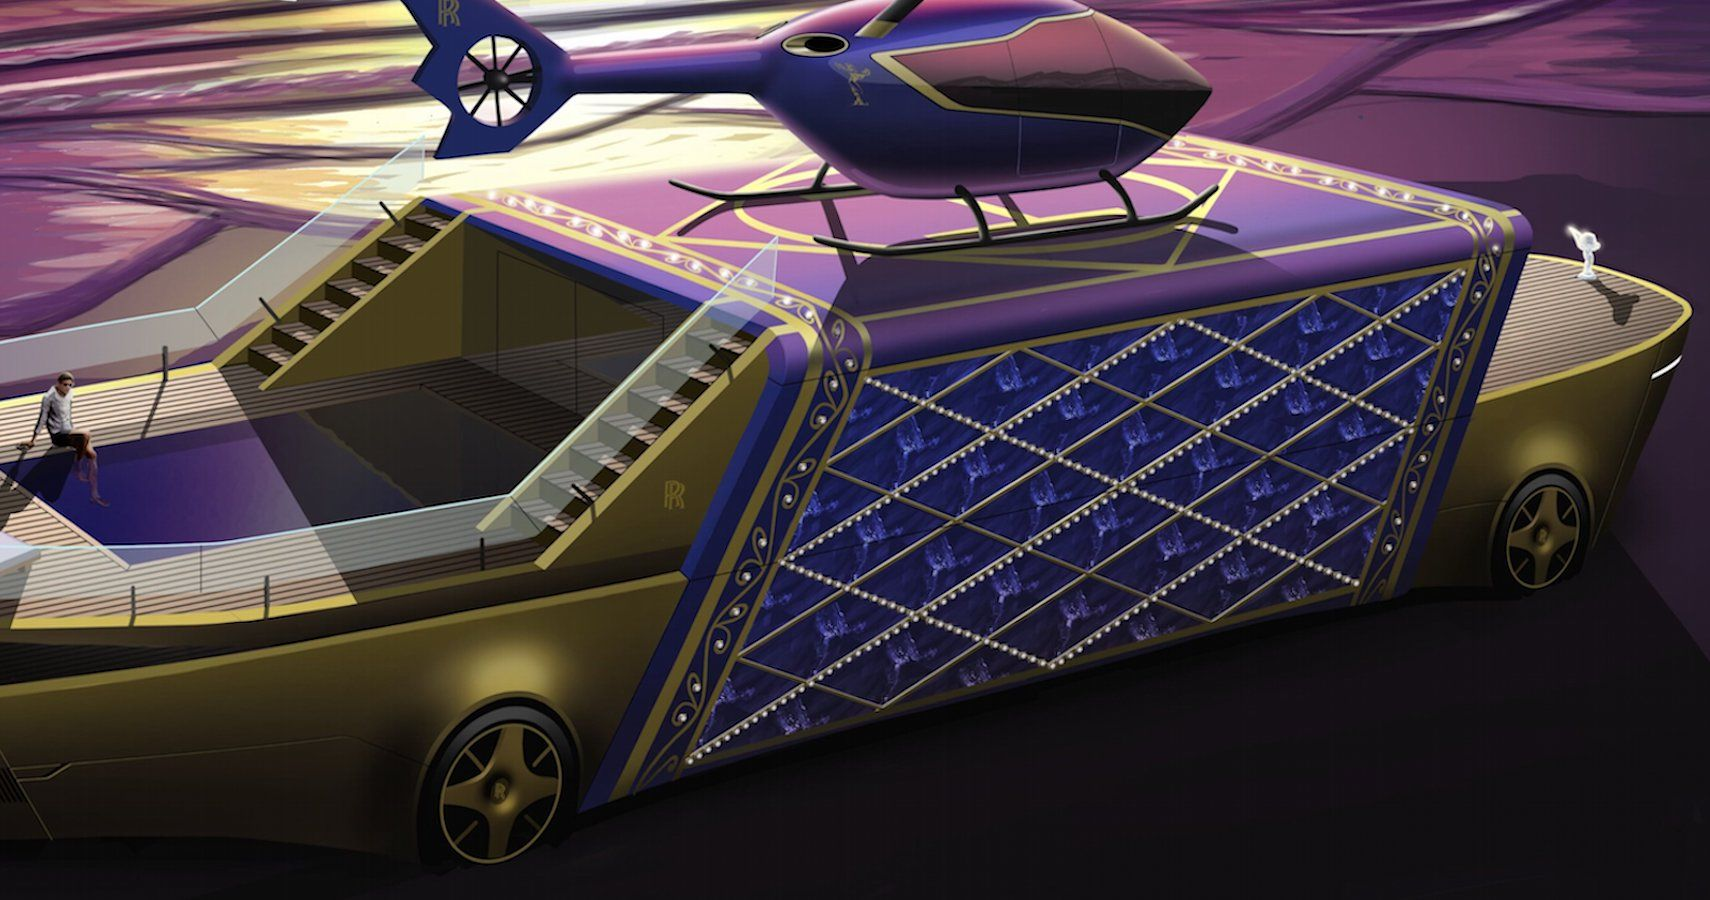 Rolls-Royce Awards 9-Year-Old For Designing This Extravagent Land Yacht